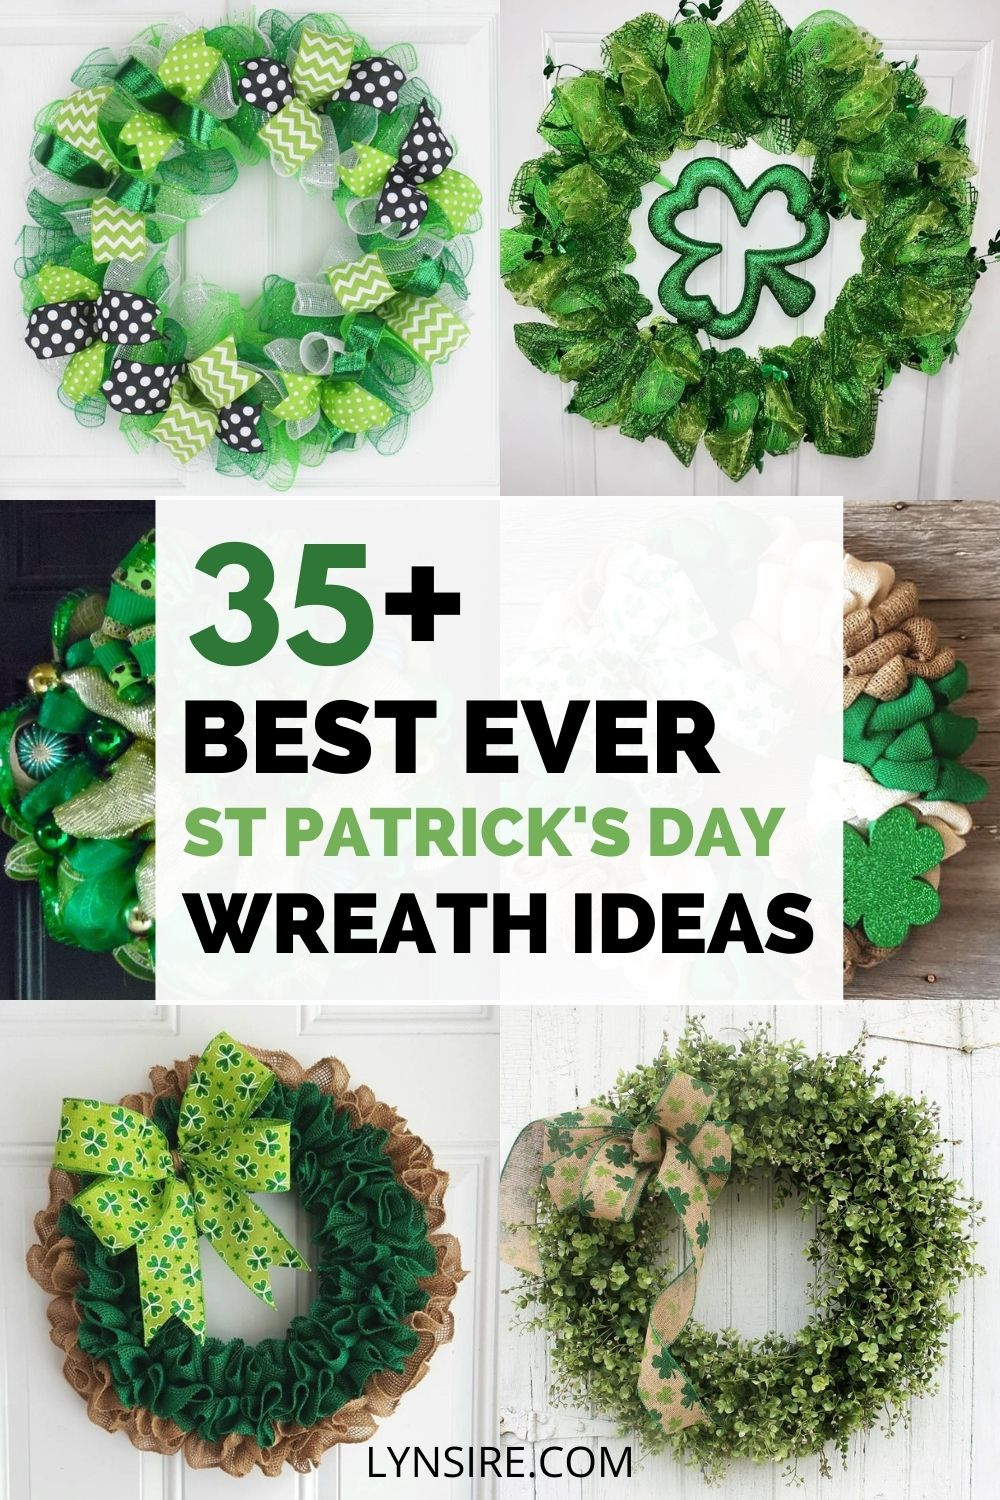 St Patrick's Day wreath ideas